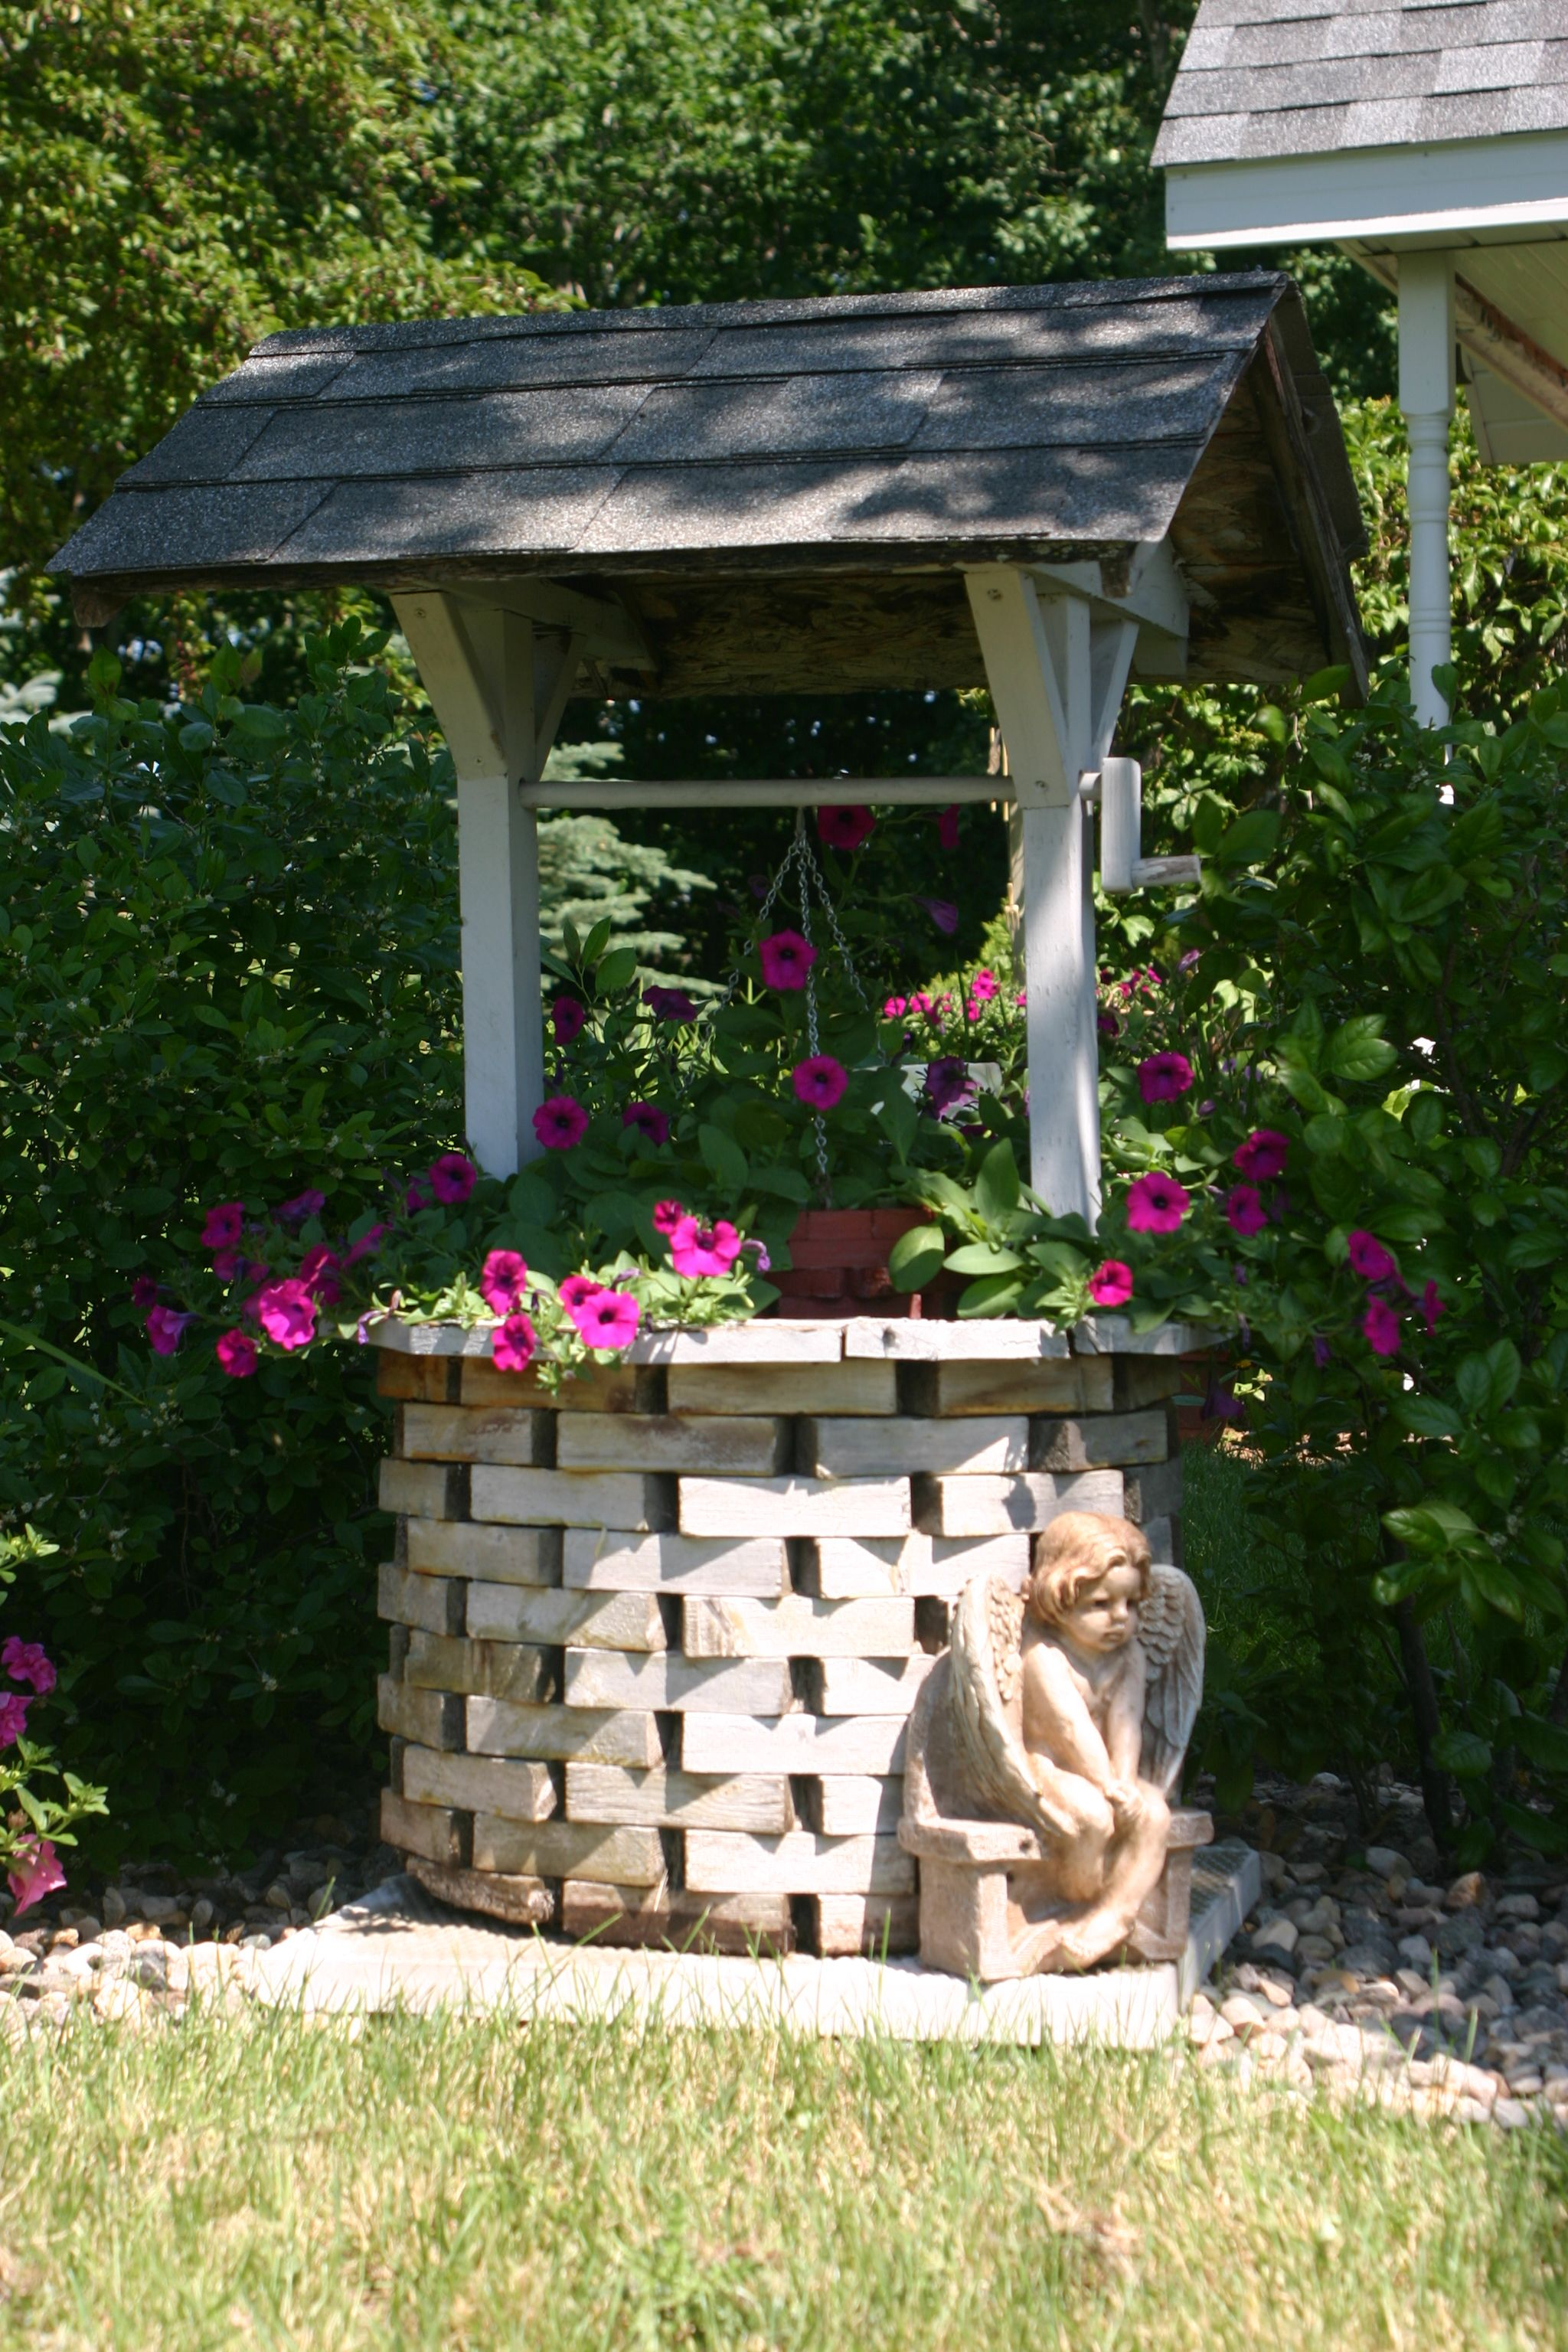 Garden designs with bridges and wishing wells landscaping ideas - Wishing Well